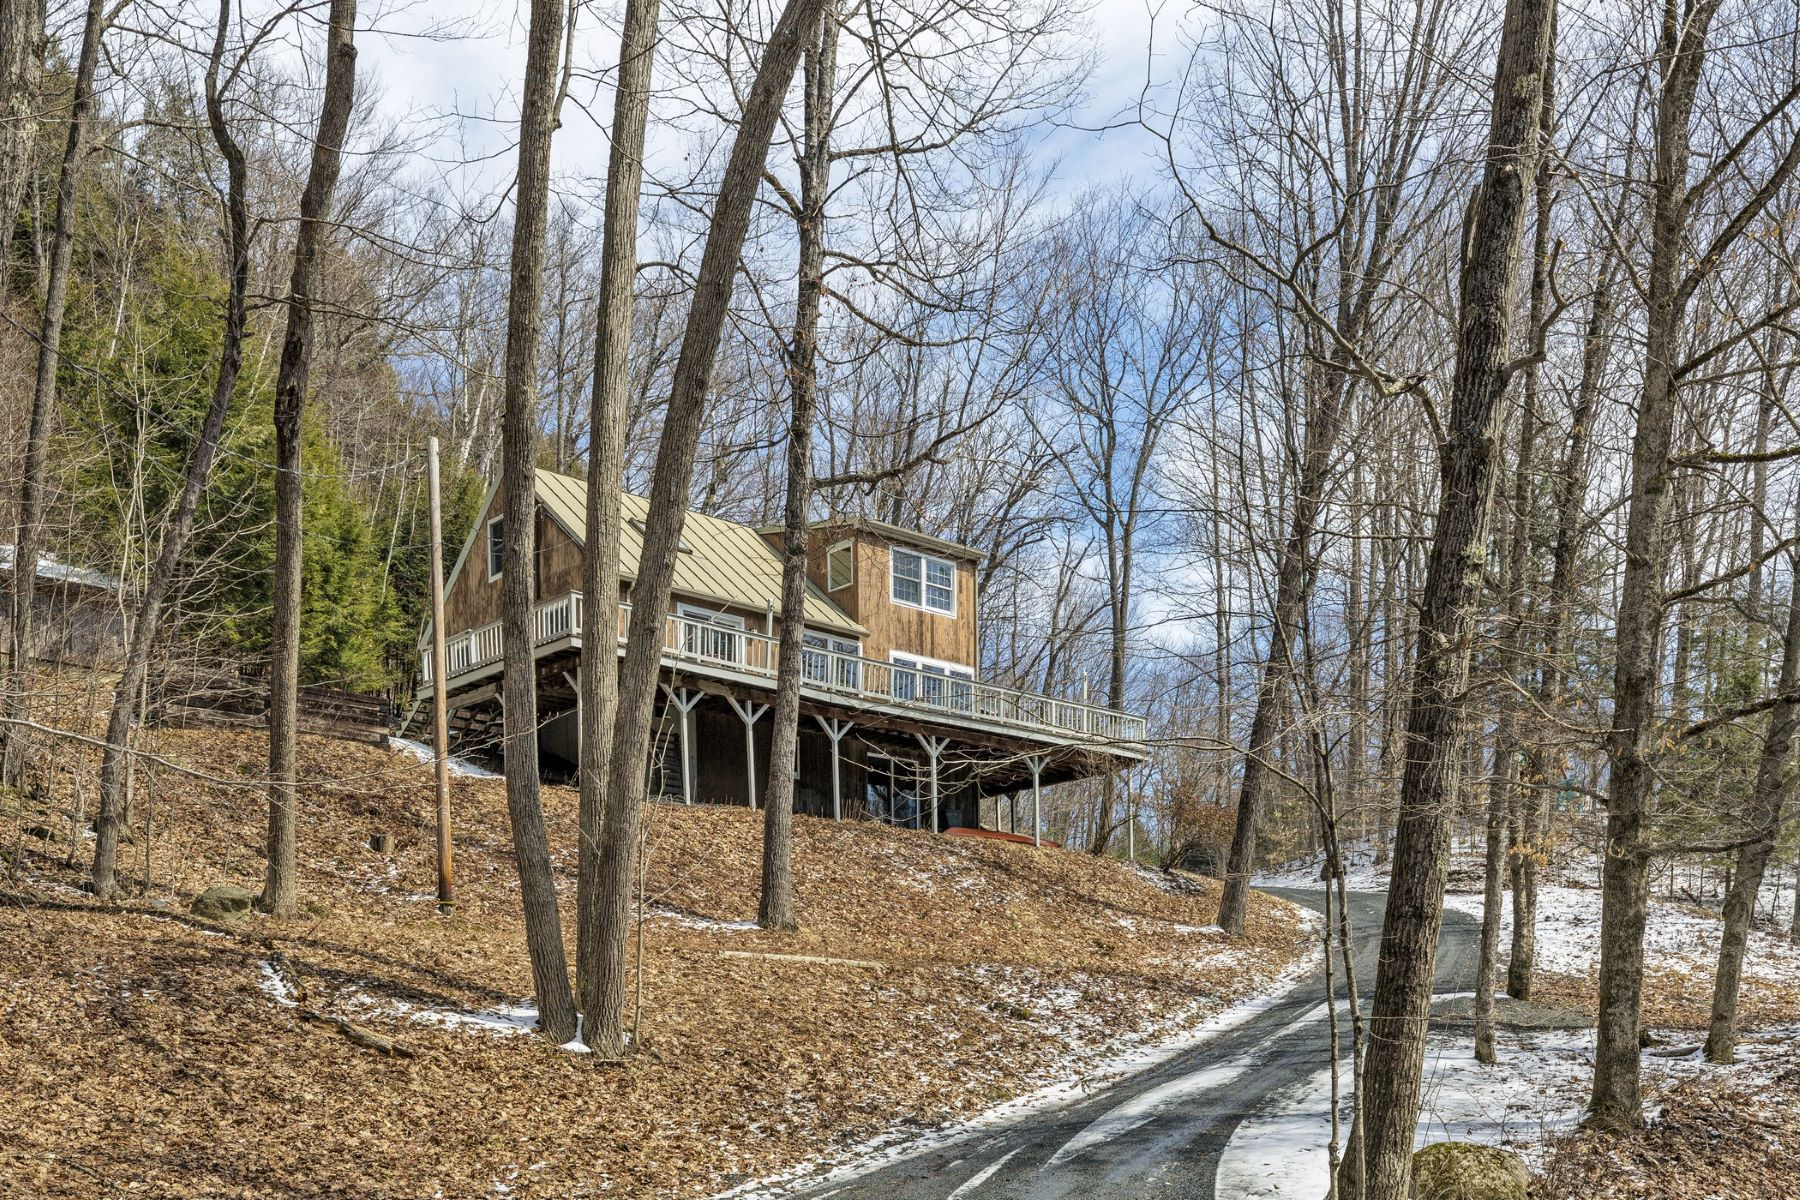 Single Family Home for Sale at 59 Pico Road, Lyme 59 Pico Rd Lyme, New Hampshire 03768 United States